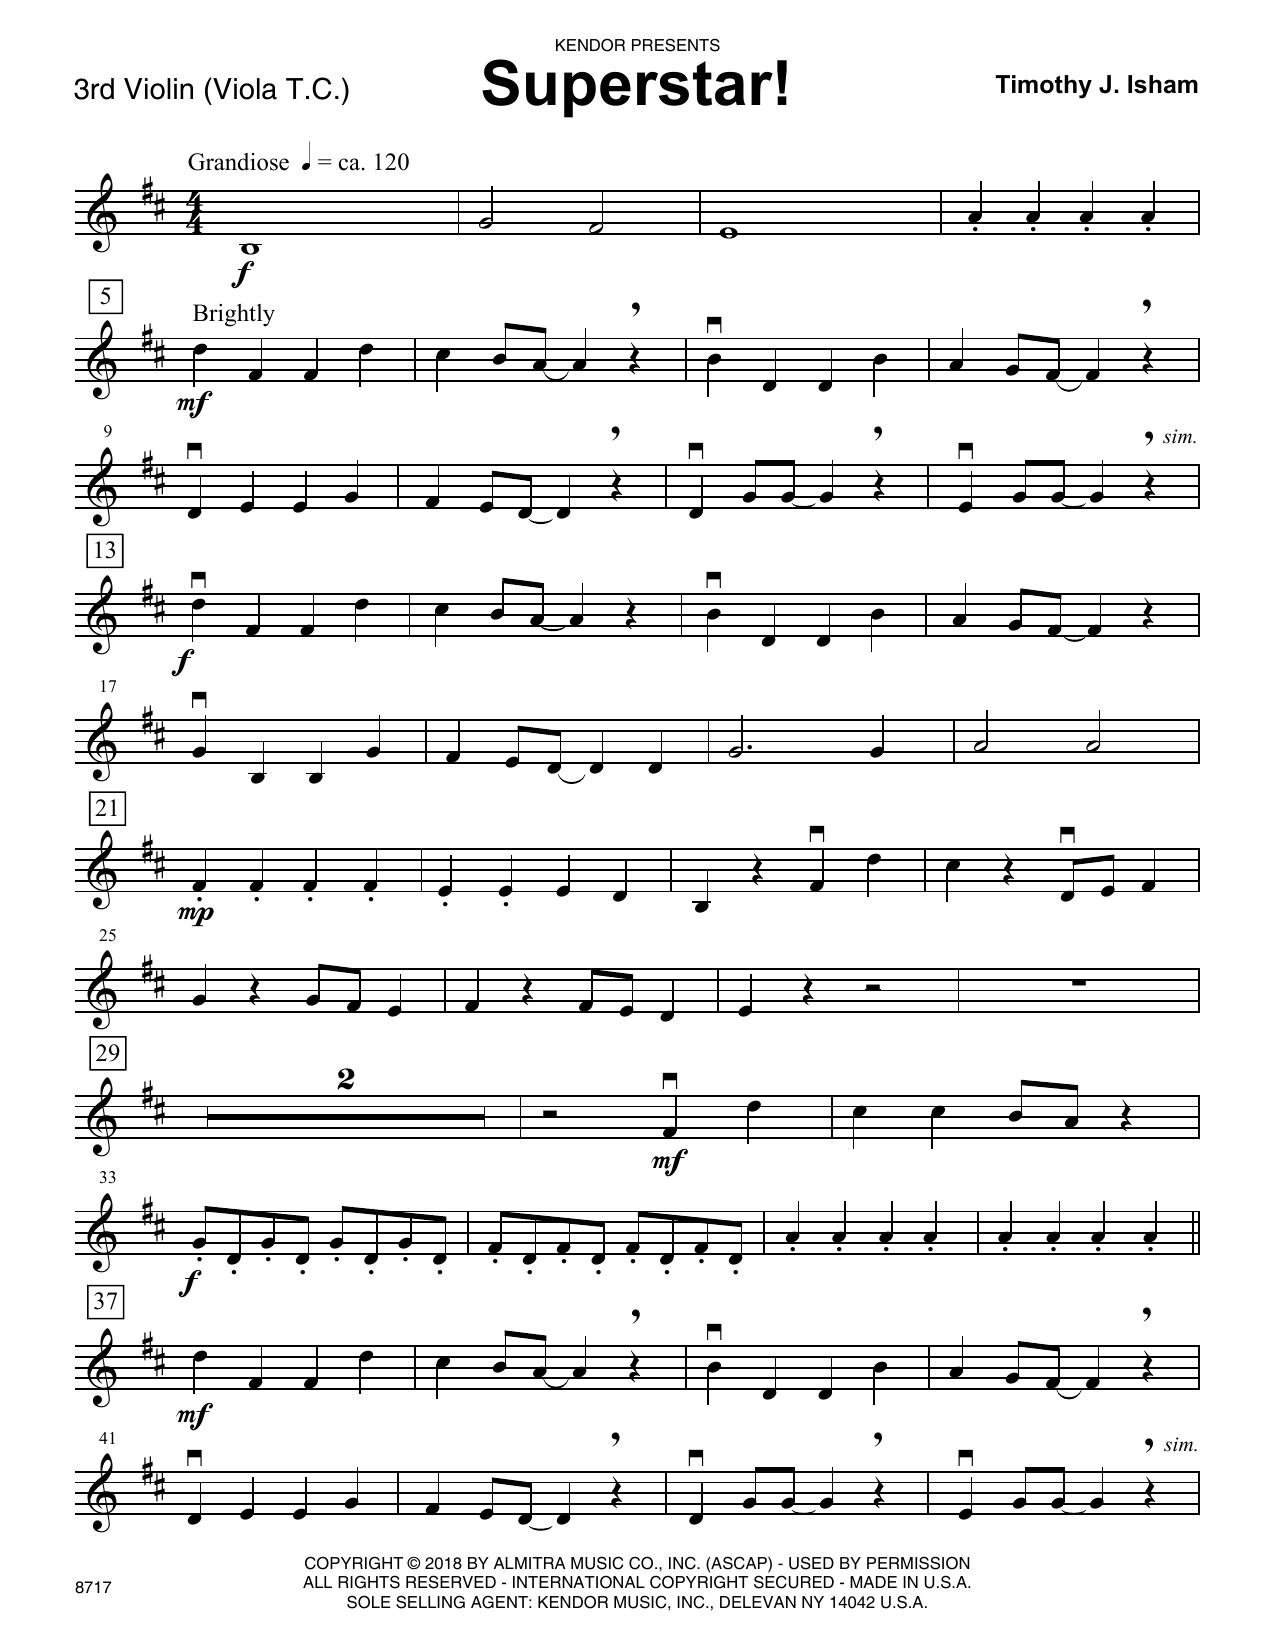 Timothy J. Isham Superstar! - Violin 3 (Viola T.C.) sheet music preview music notes and score for Orchestra including 2 page(s)